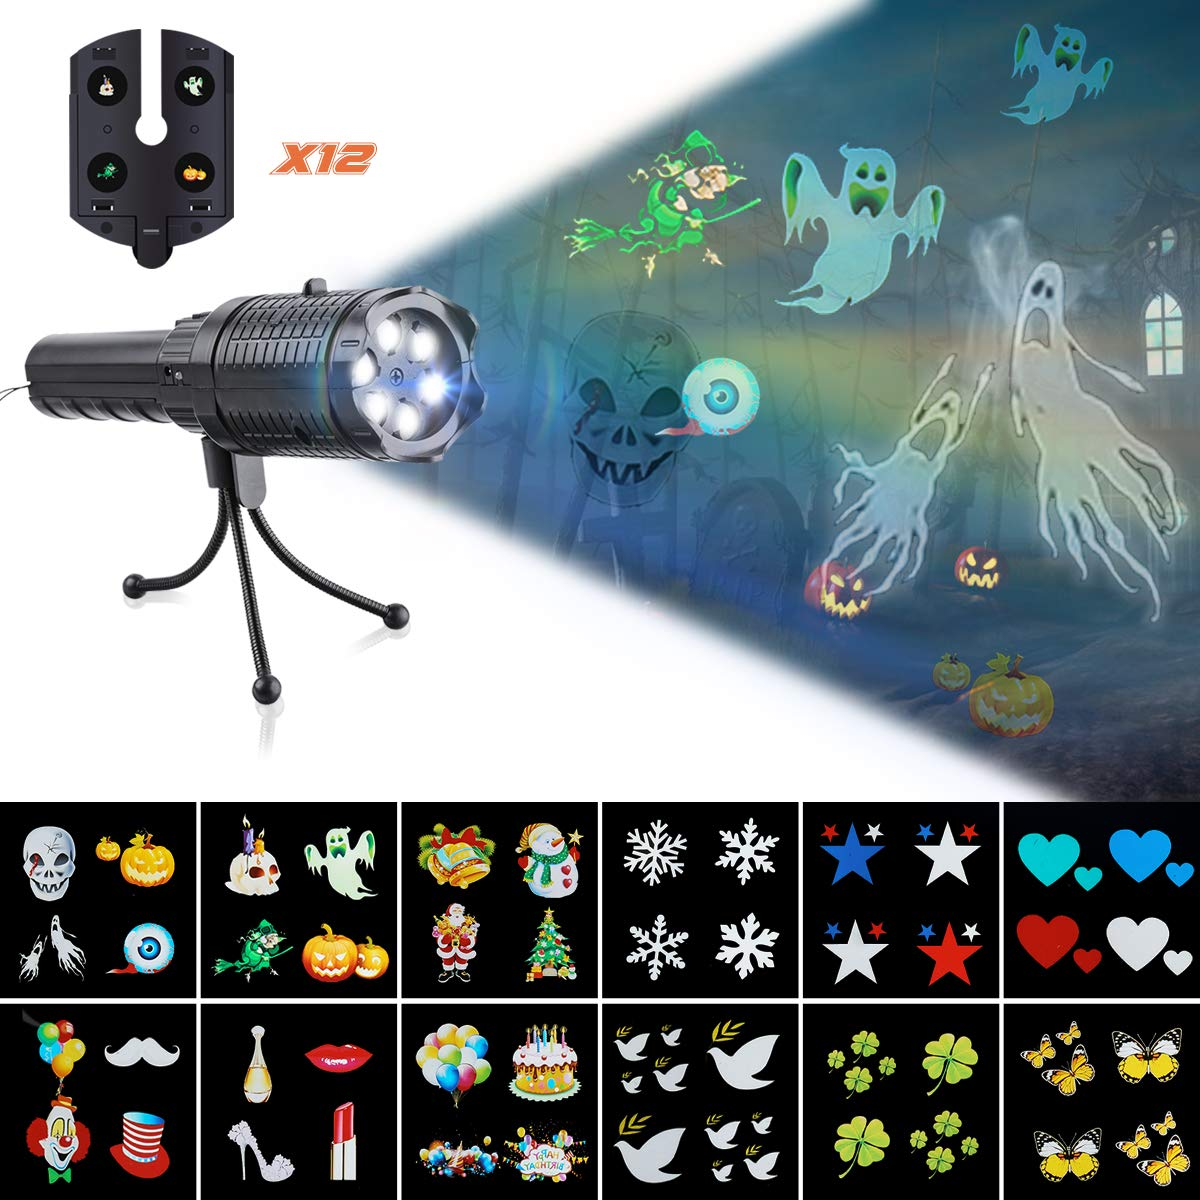 CAMTOA Handheld Projector Lights LED Projector Christmas Flashlight with 12 Replaceable Animated Pattern Slides and Tripod, Battery-Operated 2 in 1 Decoration Lamp for Kids,Party,Christmas,Halloween